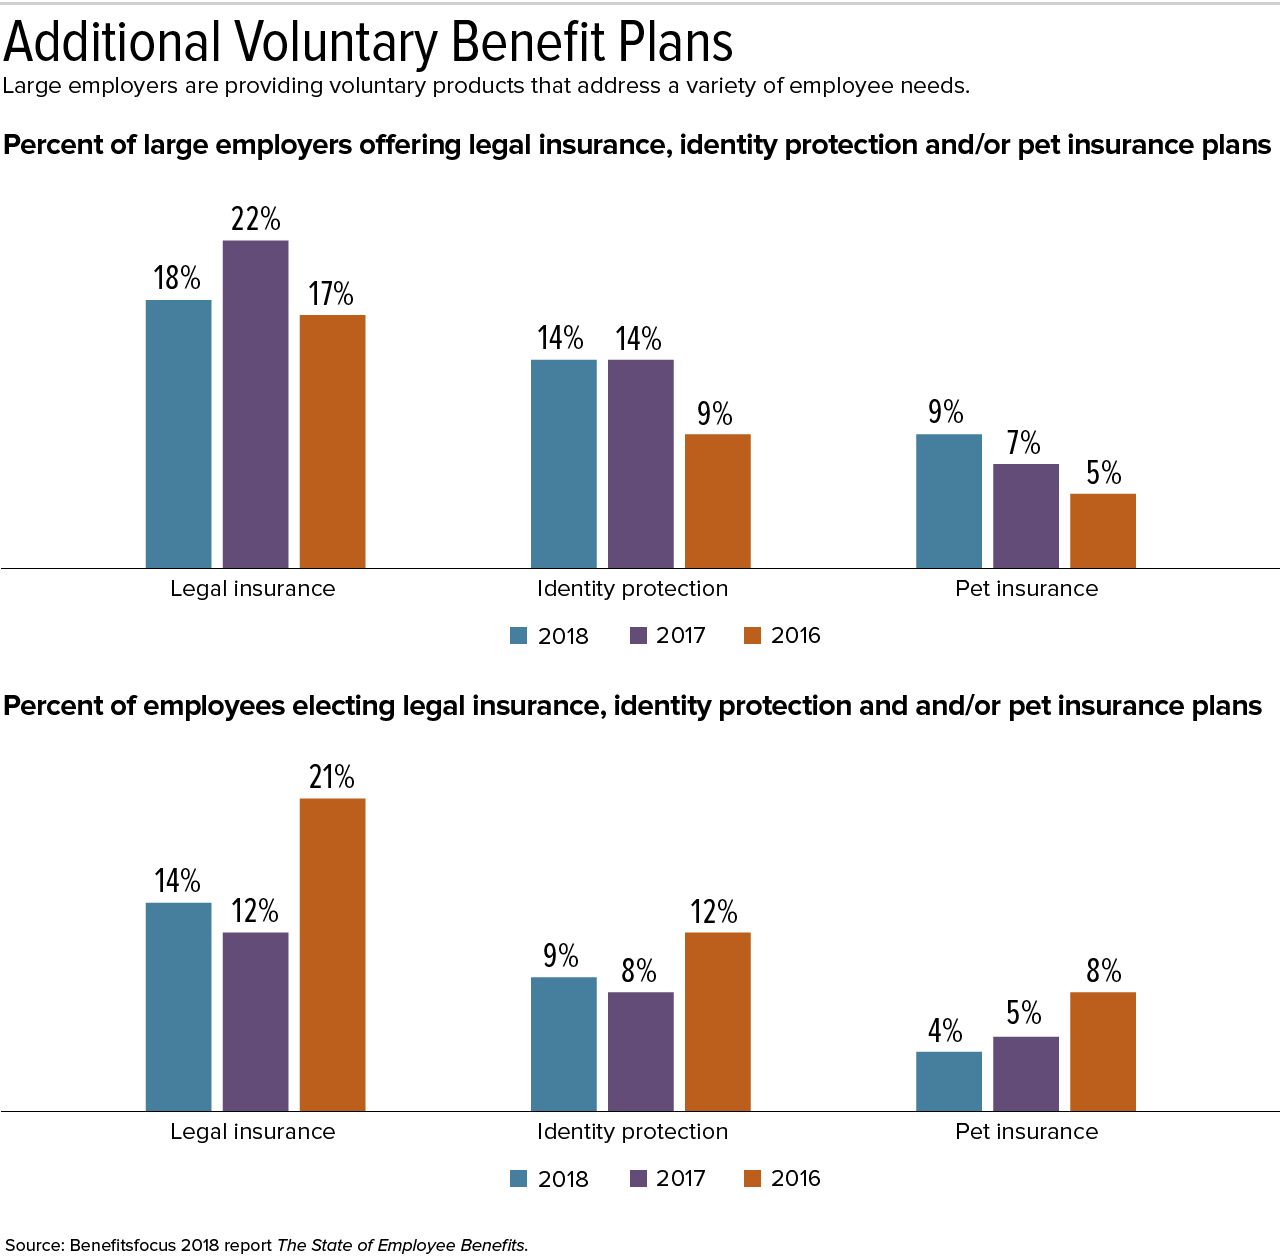 18-0594 Voluntary Benefits-03-3.jpg